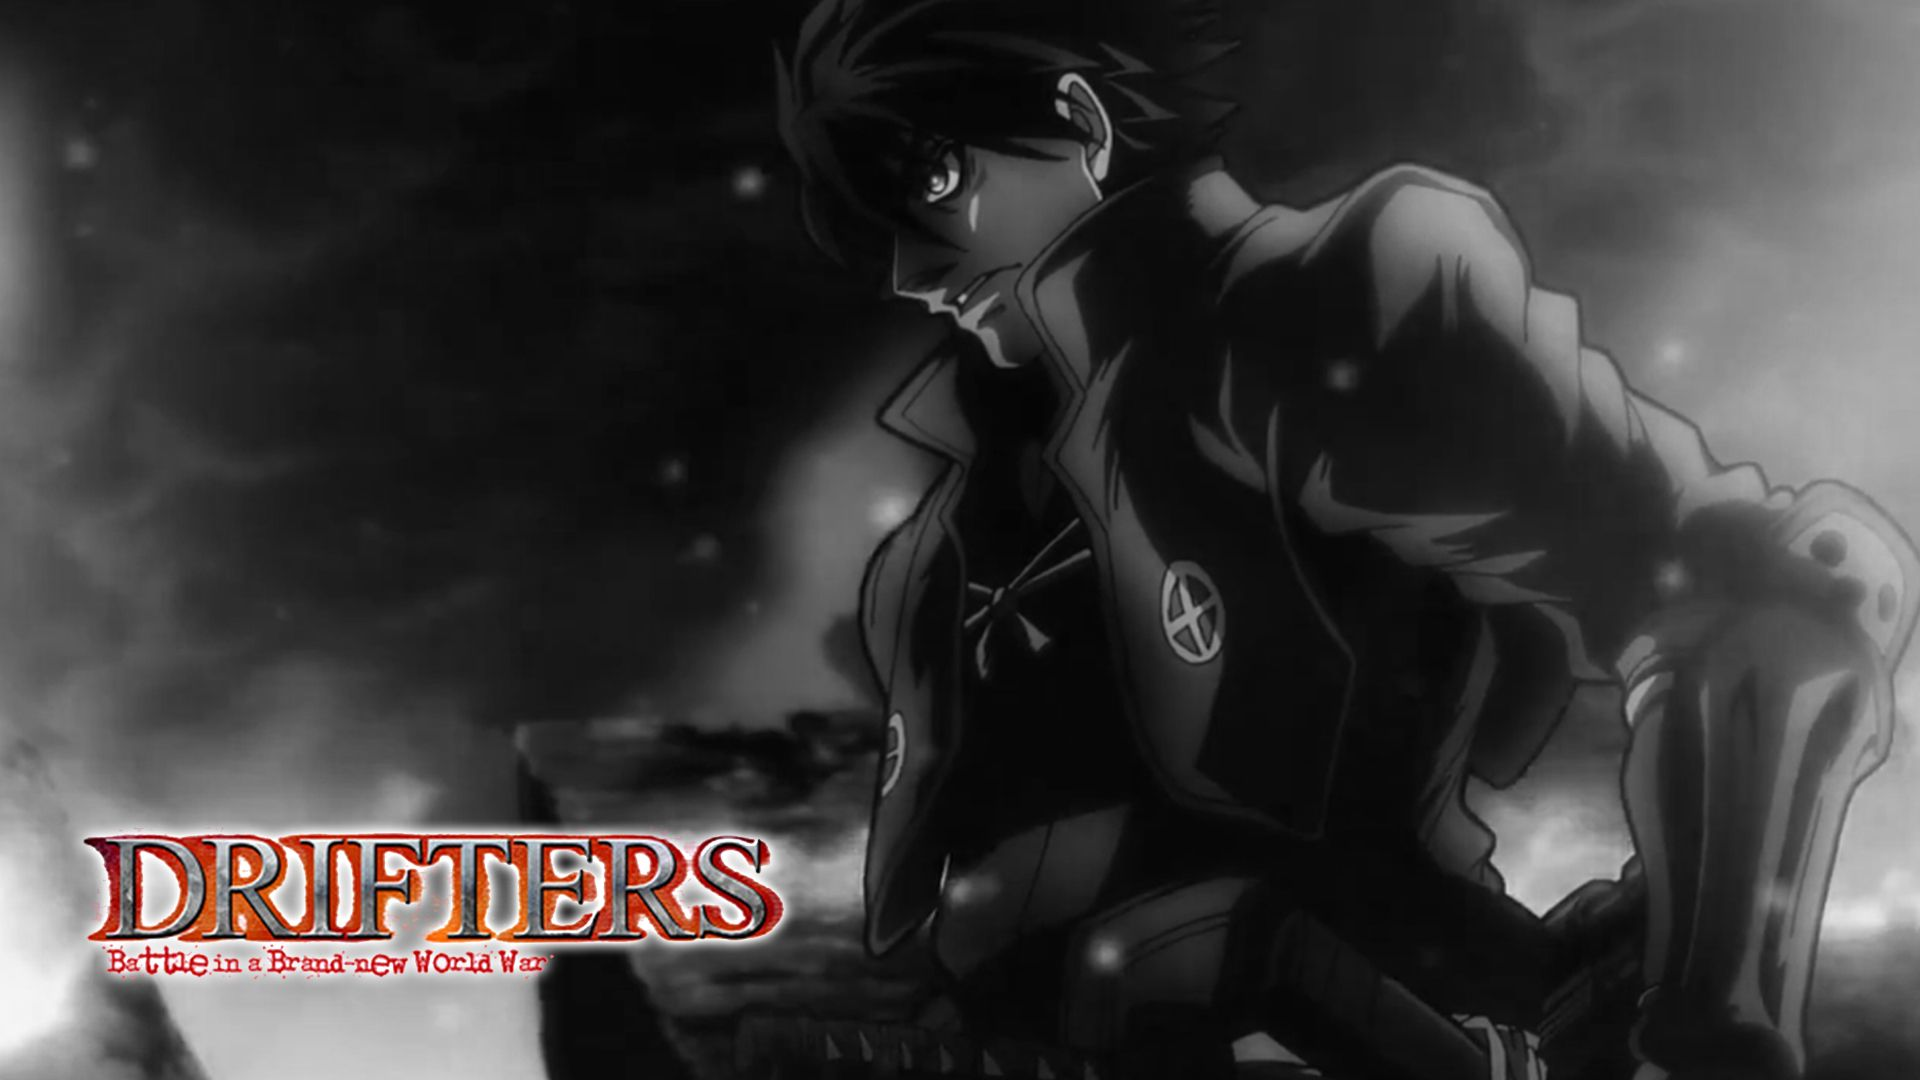 Drifters Anime Best Wallpaper 2942 Wallpaperhitz Com 島津豊久